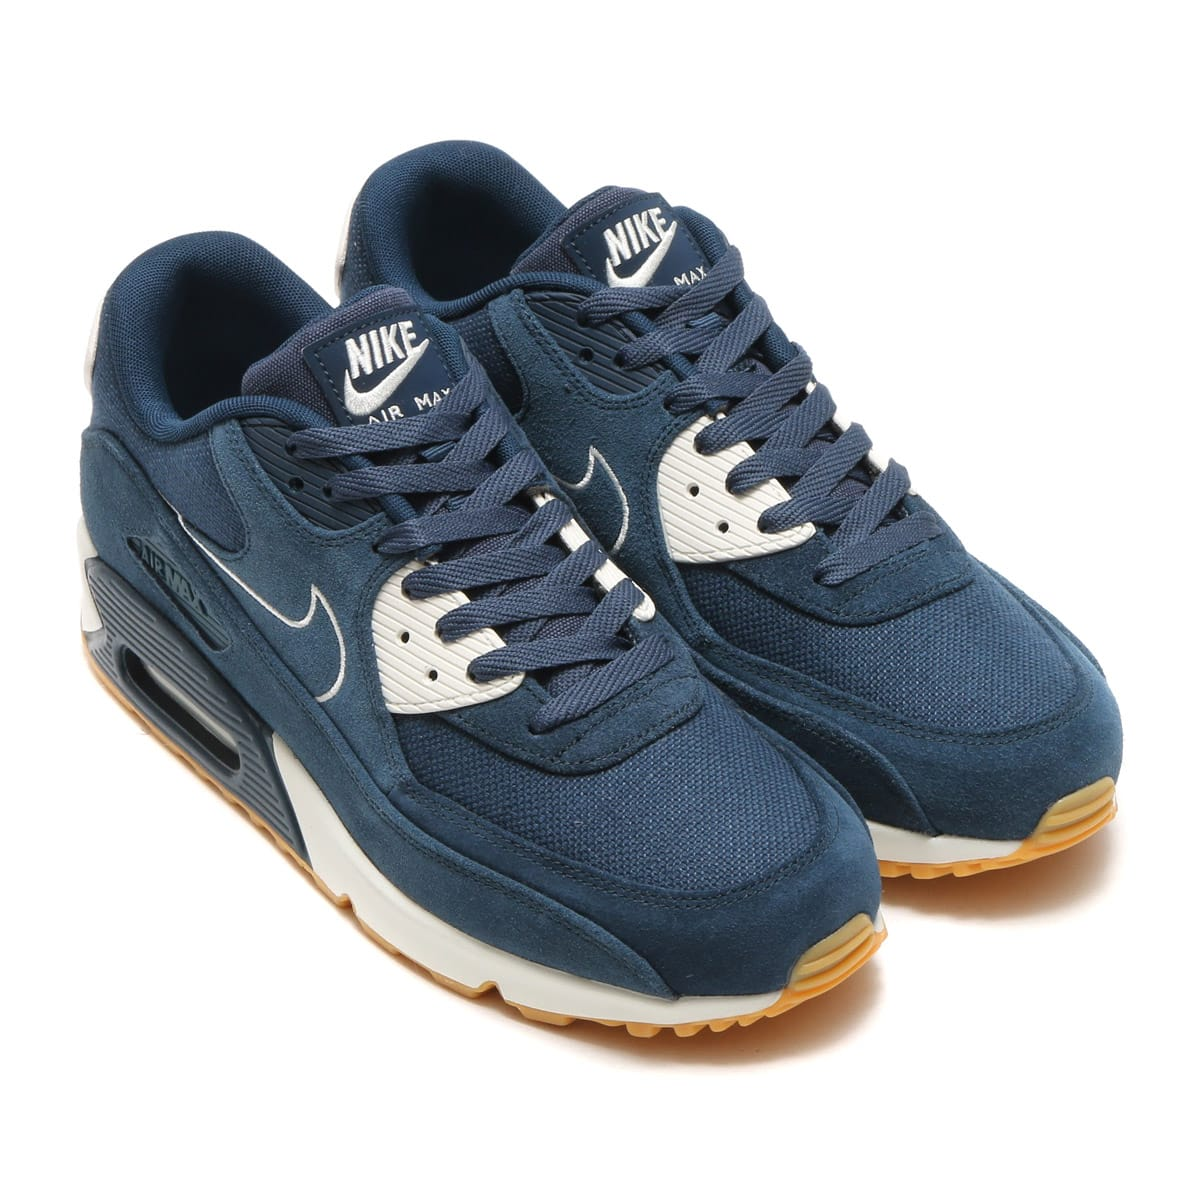 huge discount 60405 b18c1 NIKE AIR MAX 90 PREMIUM ARMORY NAVY/ARMORY NAVY-SAIL-GUM YELLOW